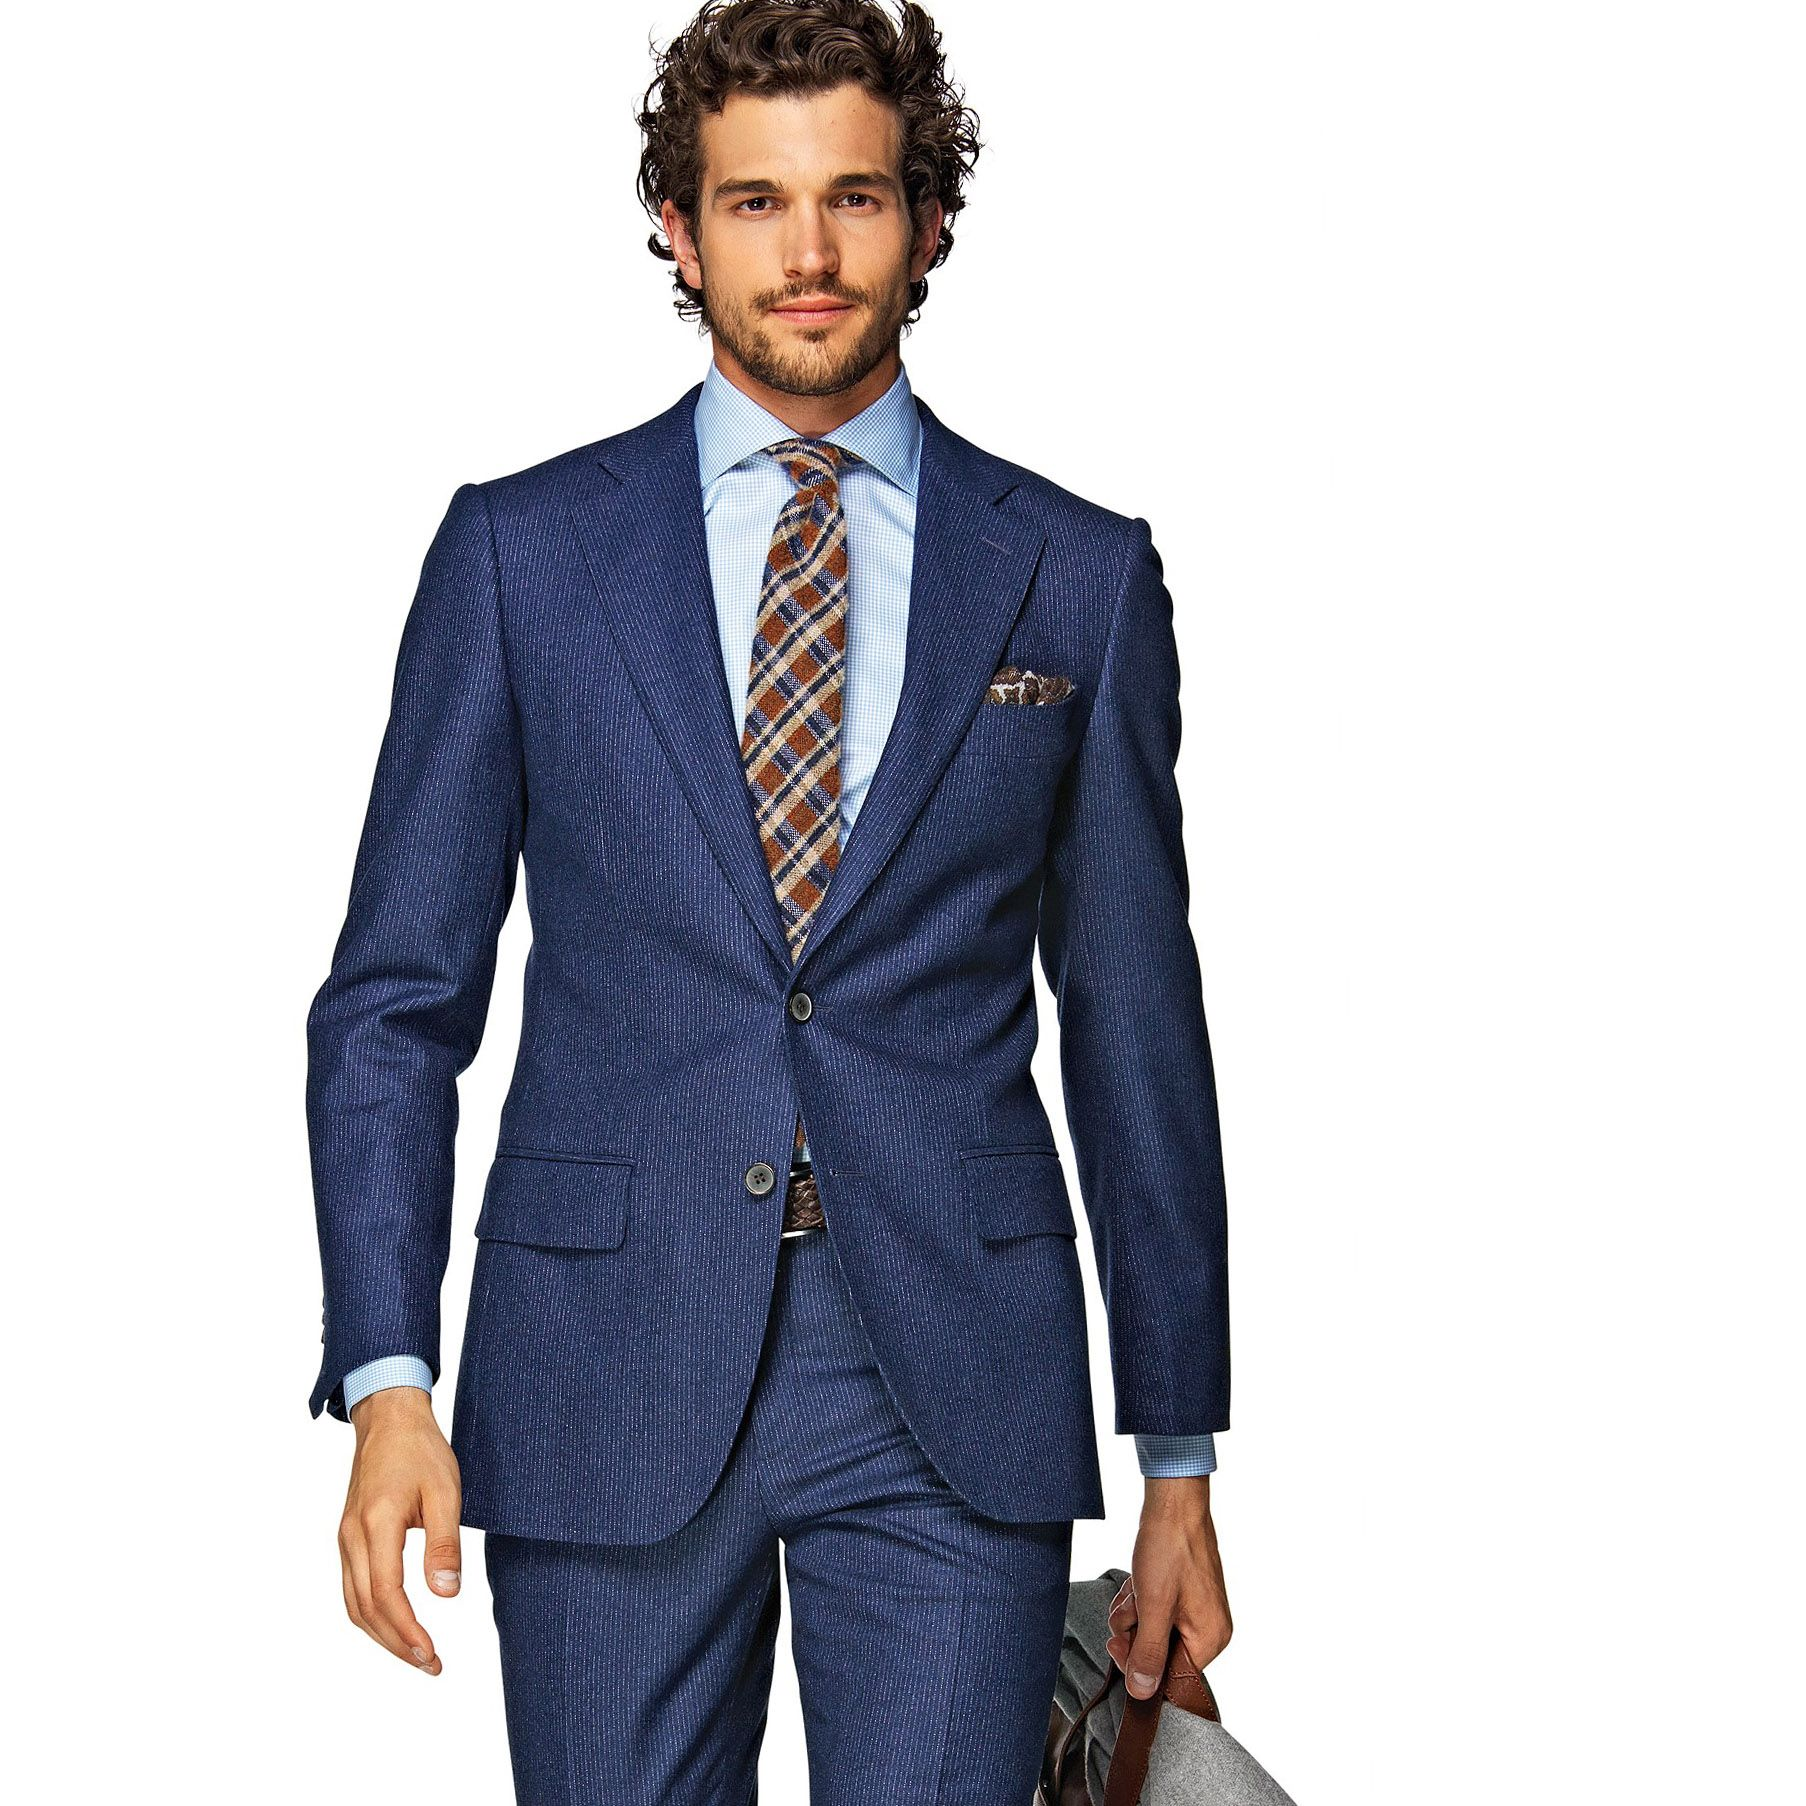 You can never go wrong with a trusty pinstripe suit in navy blue ...